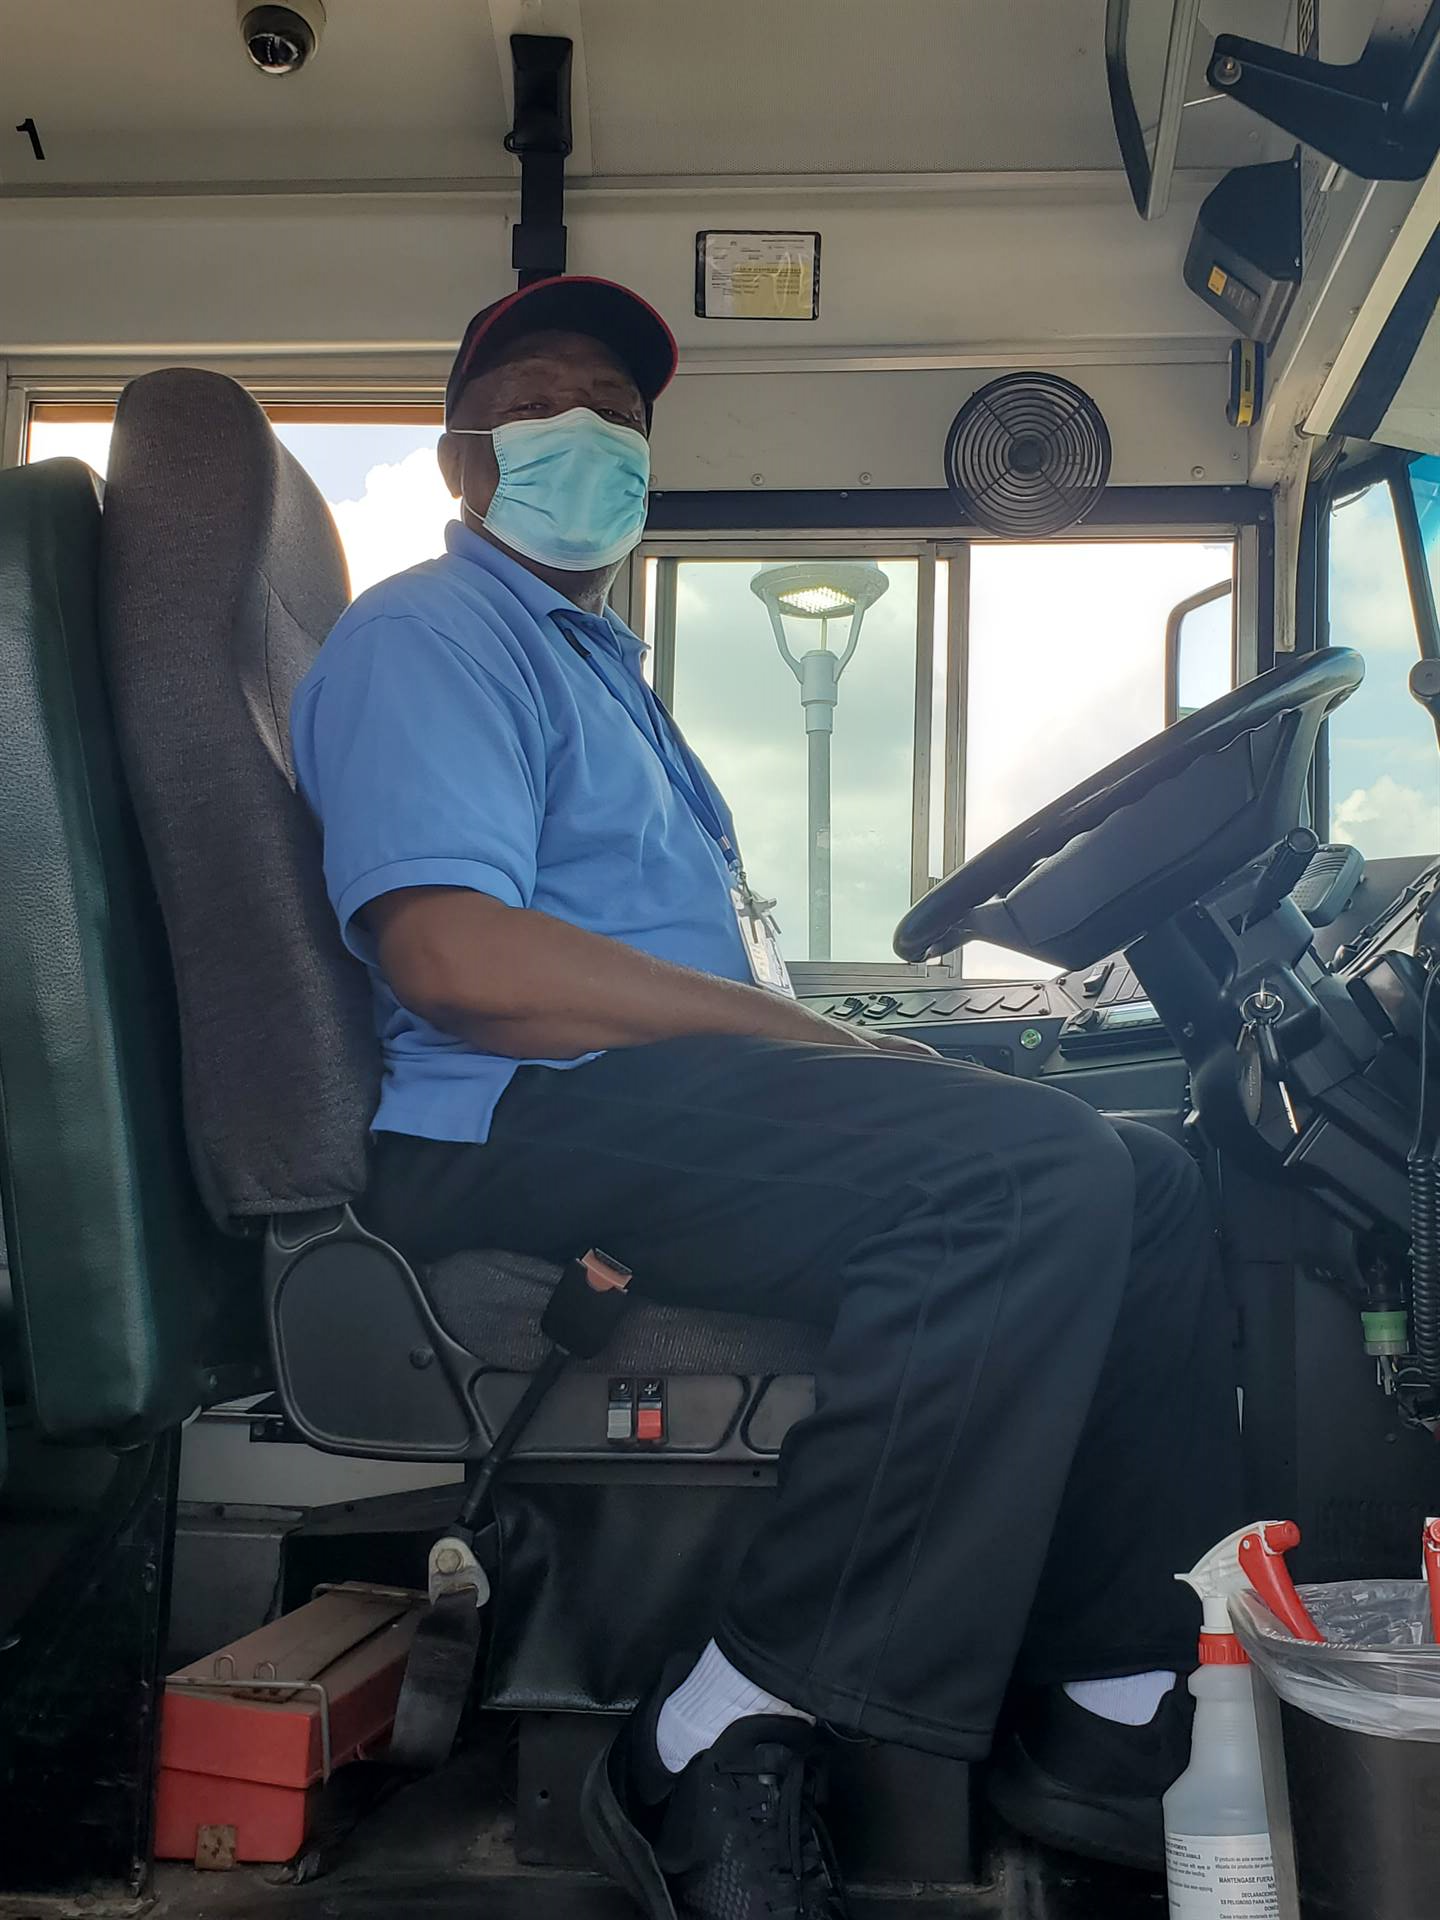 bus driver sitting in the bus